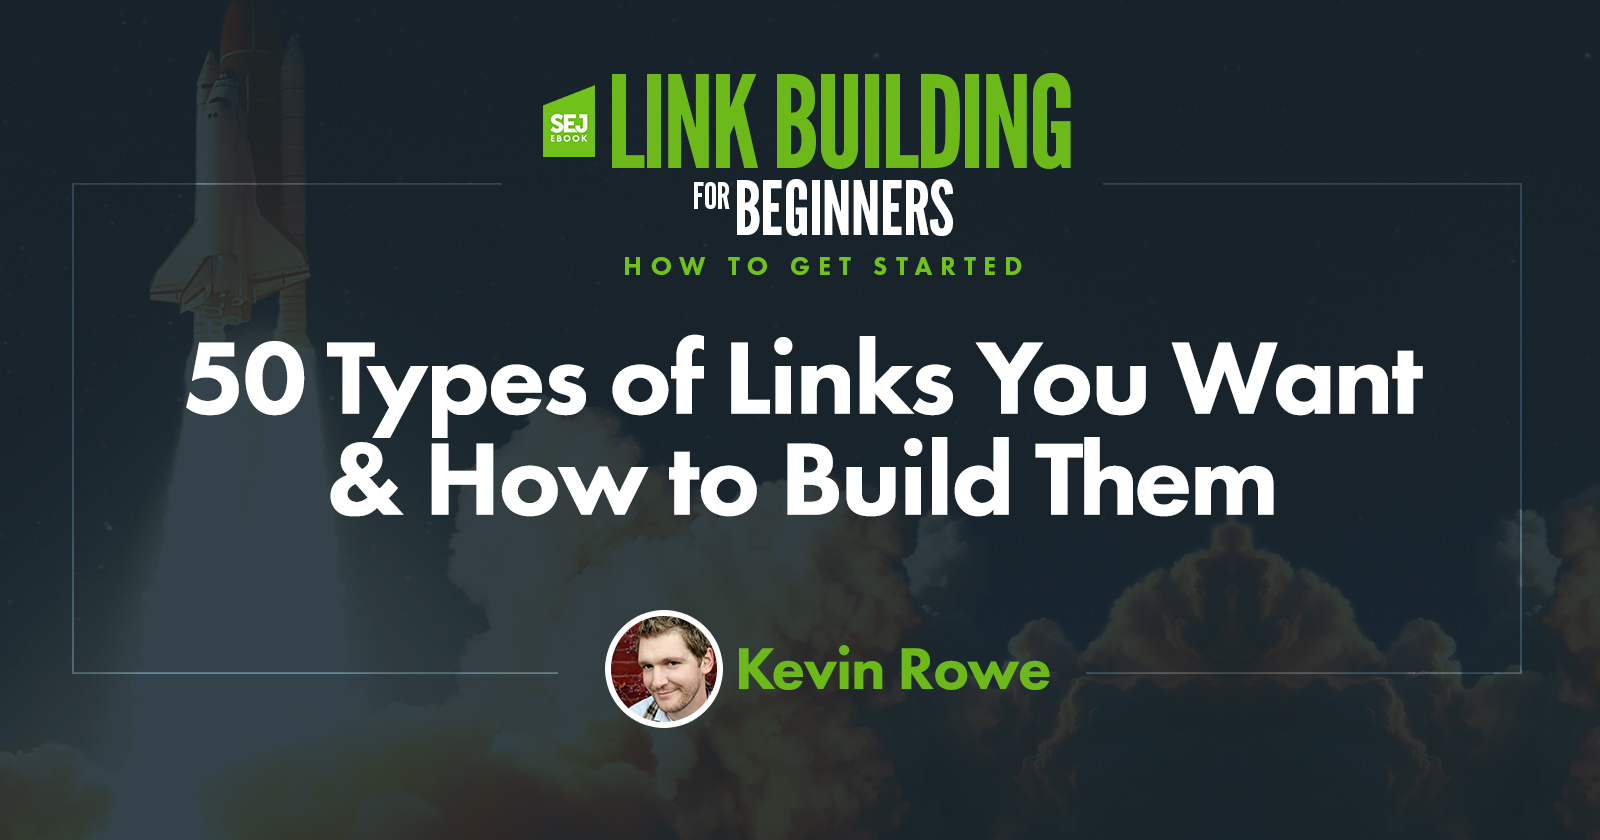 50 types of links you want how to build them 5e53c1b9392a0